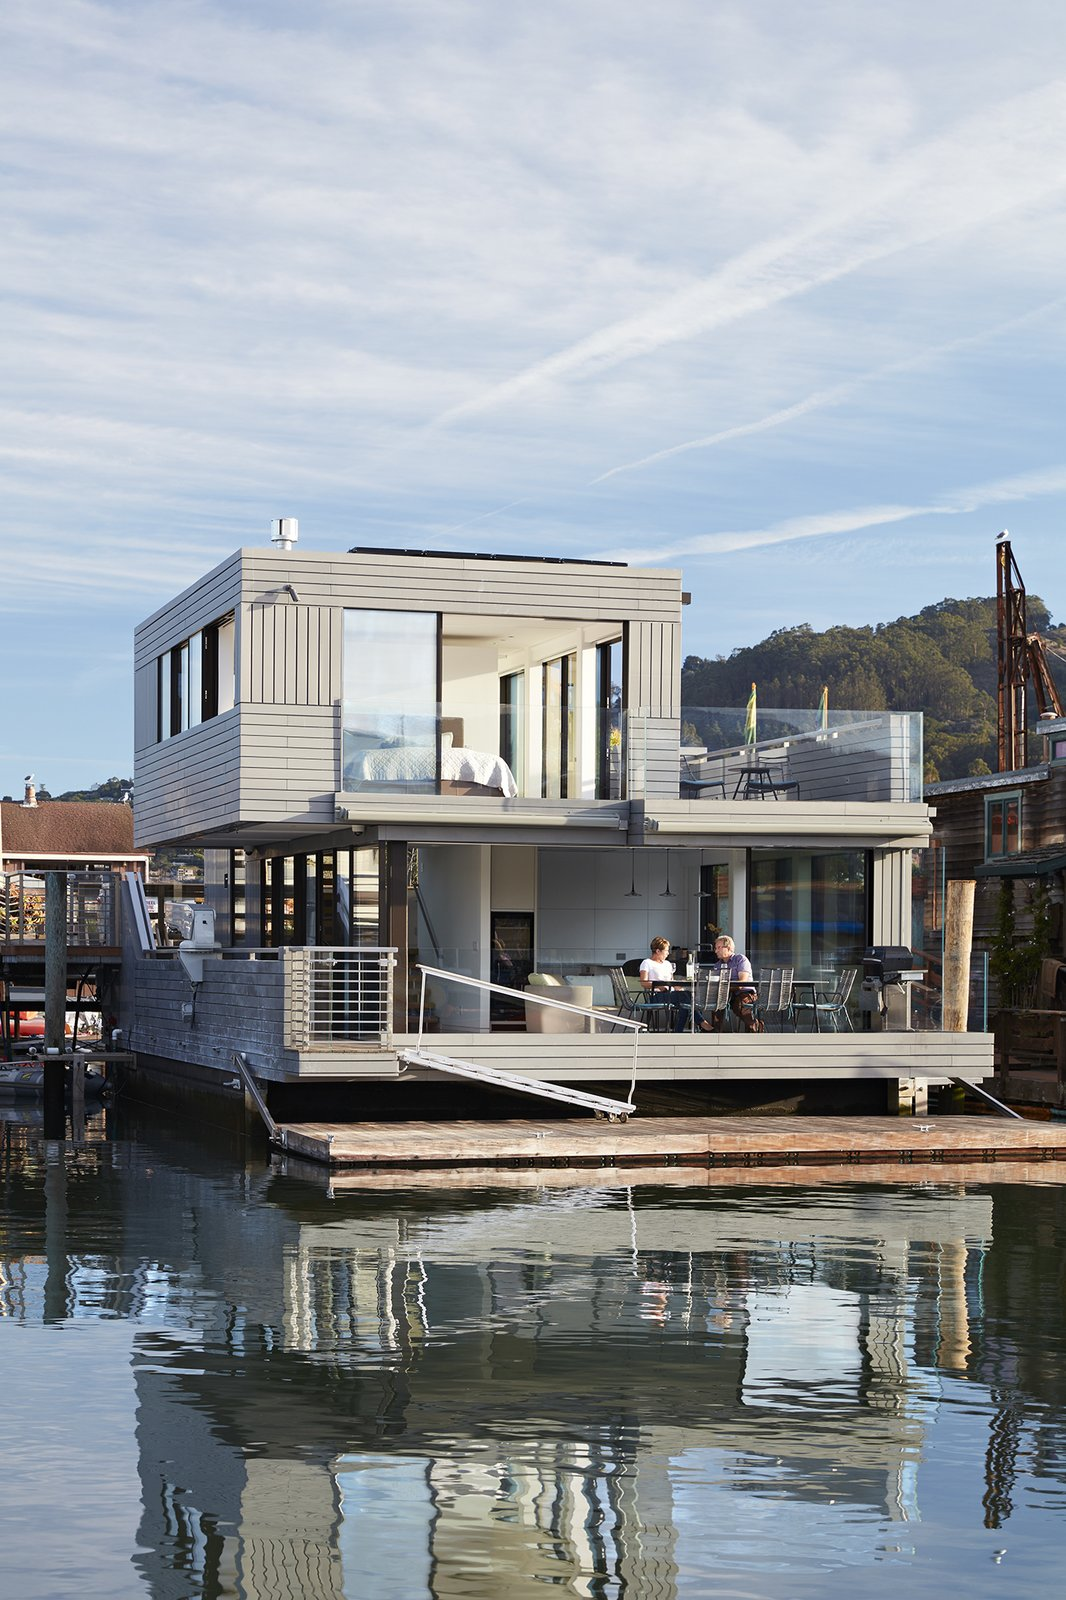 Large Patio, Porch, Deck, Hanging Lighting, and Outdoor Automatic retractable Sky-Frame windows open the living room  completely on two sides.  Floating Dreams Residence from Water Sports